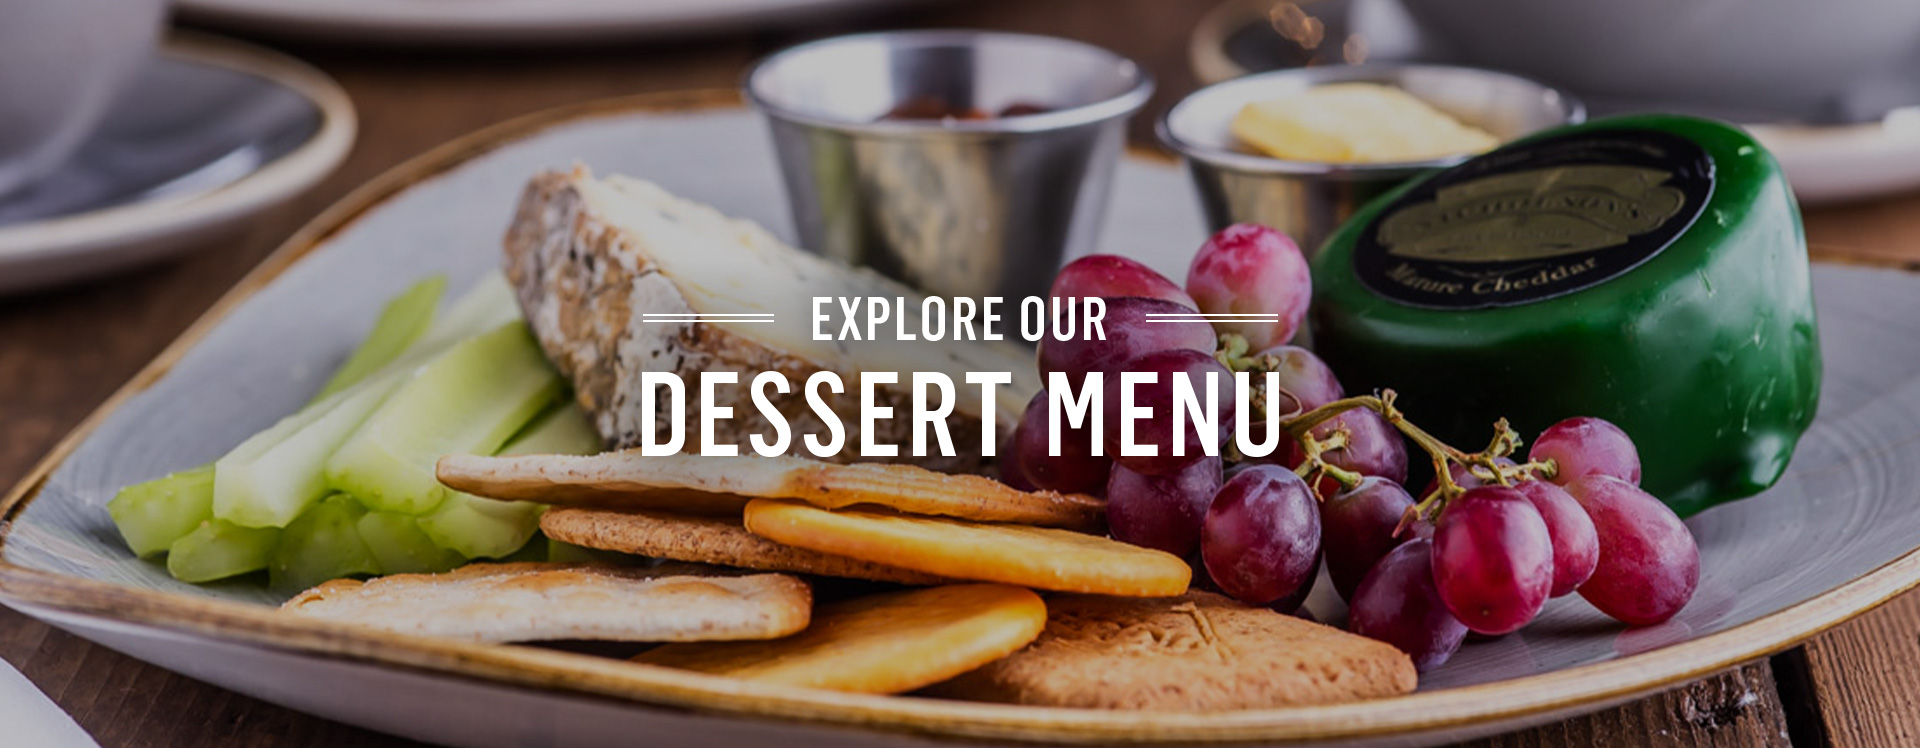 Dessert menu at The Swan - Book a table